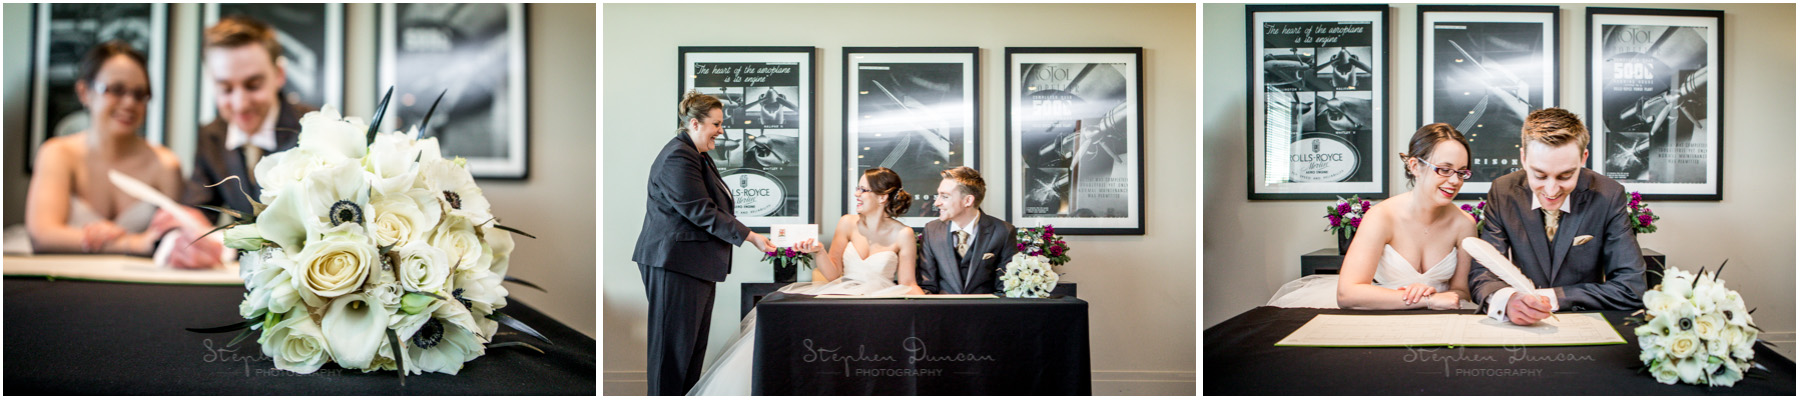 The Aviator wedding photography signing the register